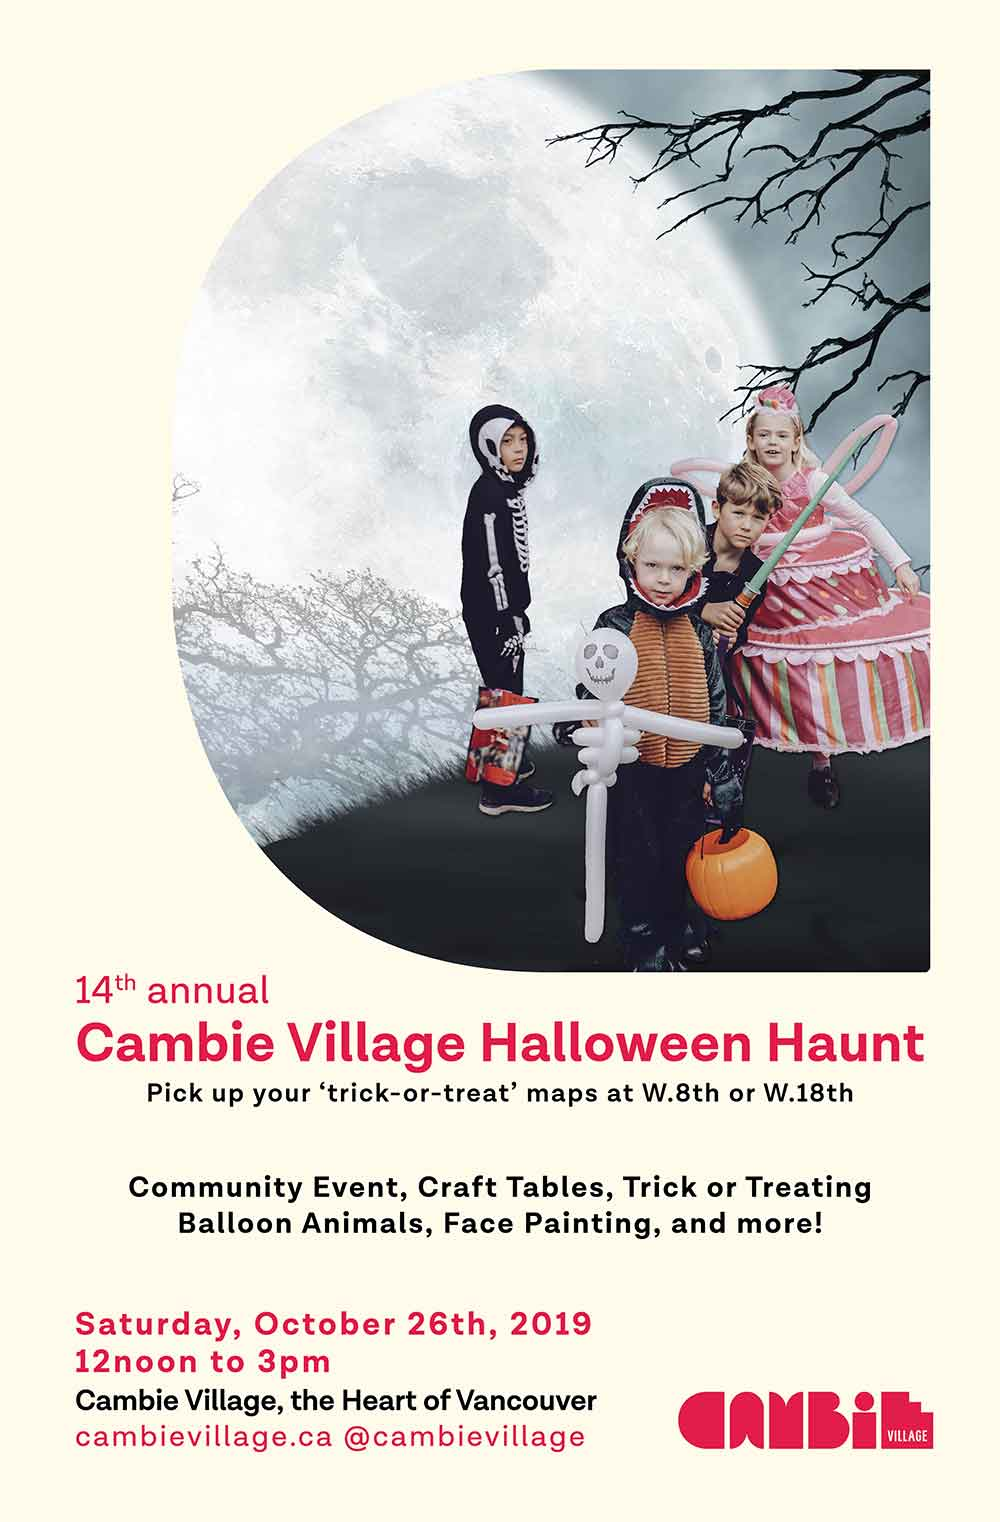 14th annual Cambie Village Halloween Haunt Pick up your 'trick-or-treat' maps at W.Sth or W.18th Community Event, Craft Tables, Trick or Treating Balloon Animals, Face Painting, and more! Saturday, October 26th, 2019 12noon to 3pm Cambie Village, the Heart of Vancouver cambievillage.ca @cambievillage